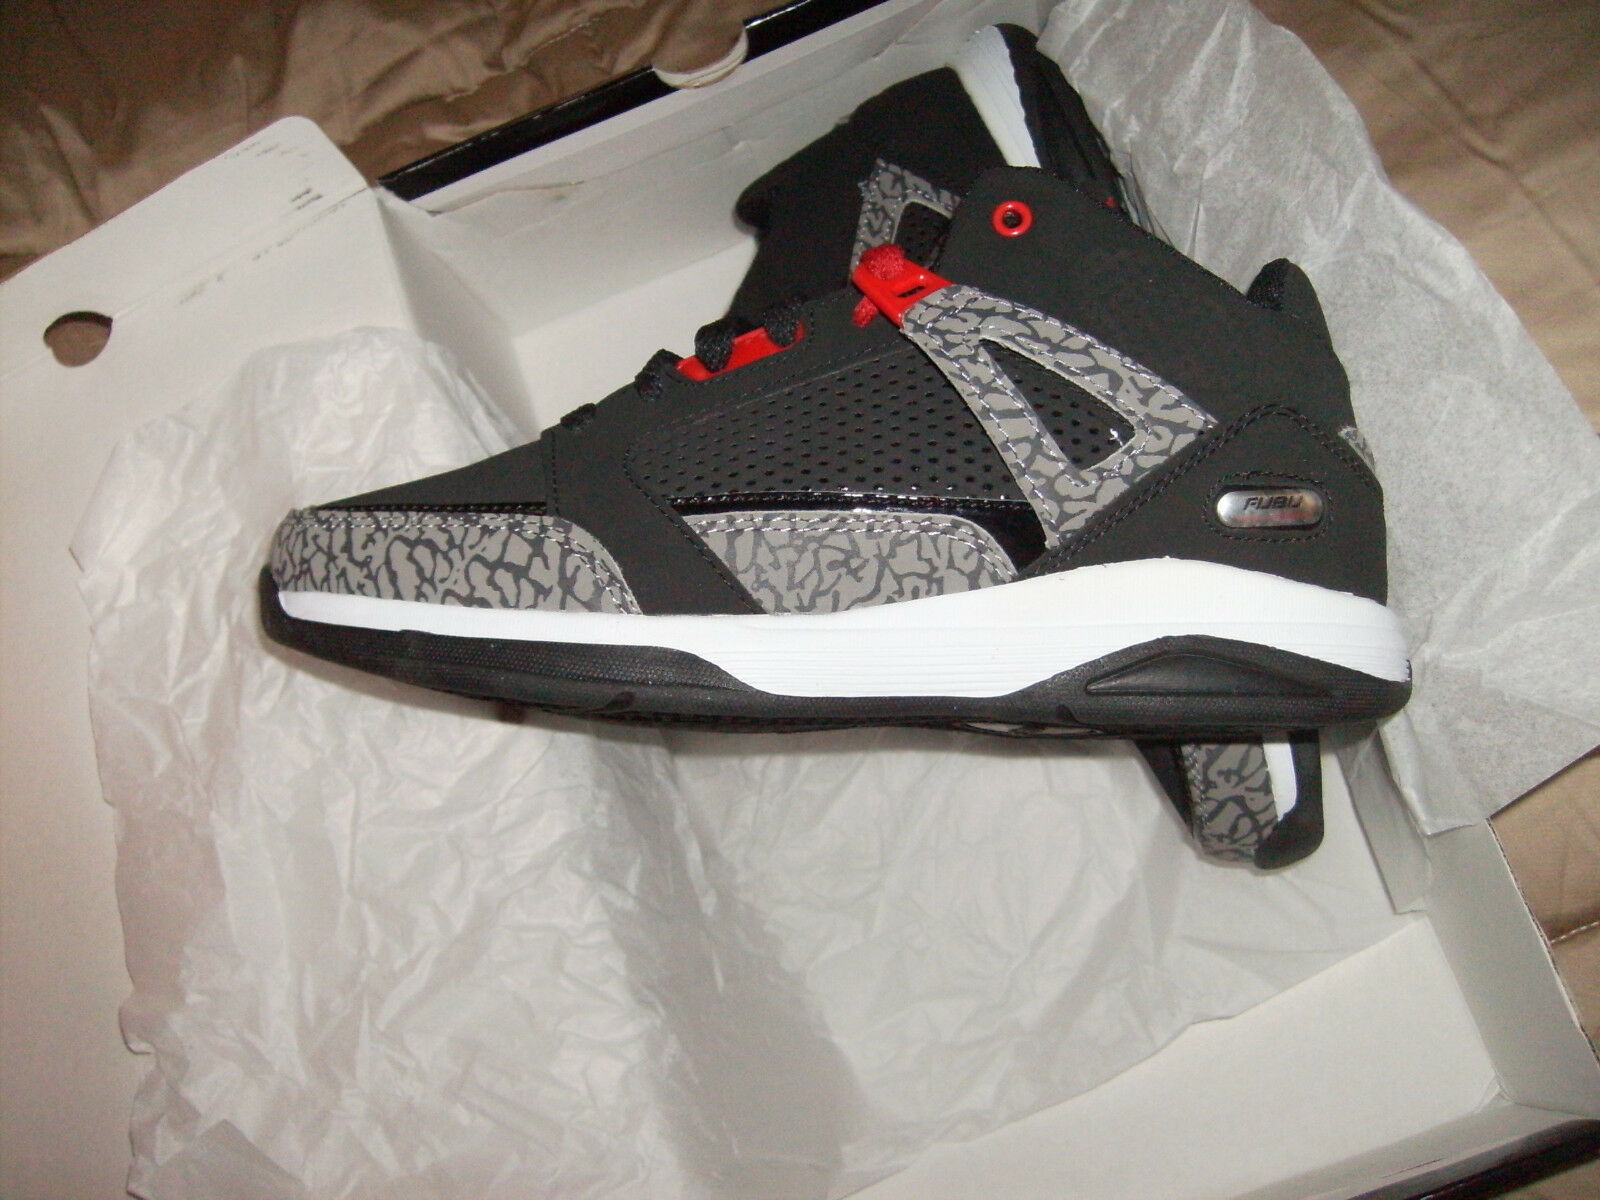 80213db2eef5ba ... UPC 605388156884 product image for Fubu Mens High Top Basketball Shoes